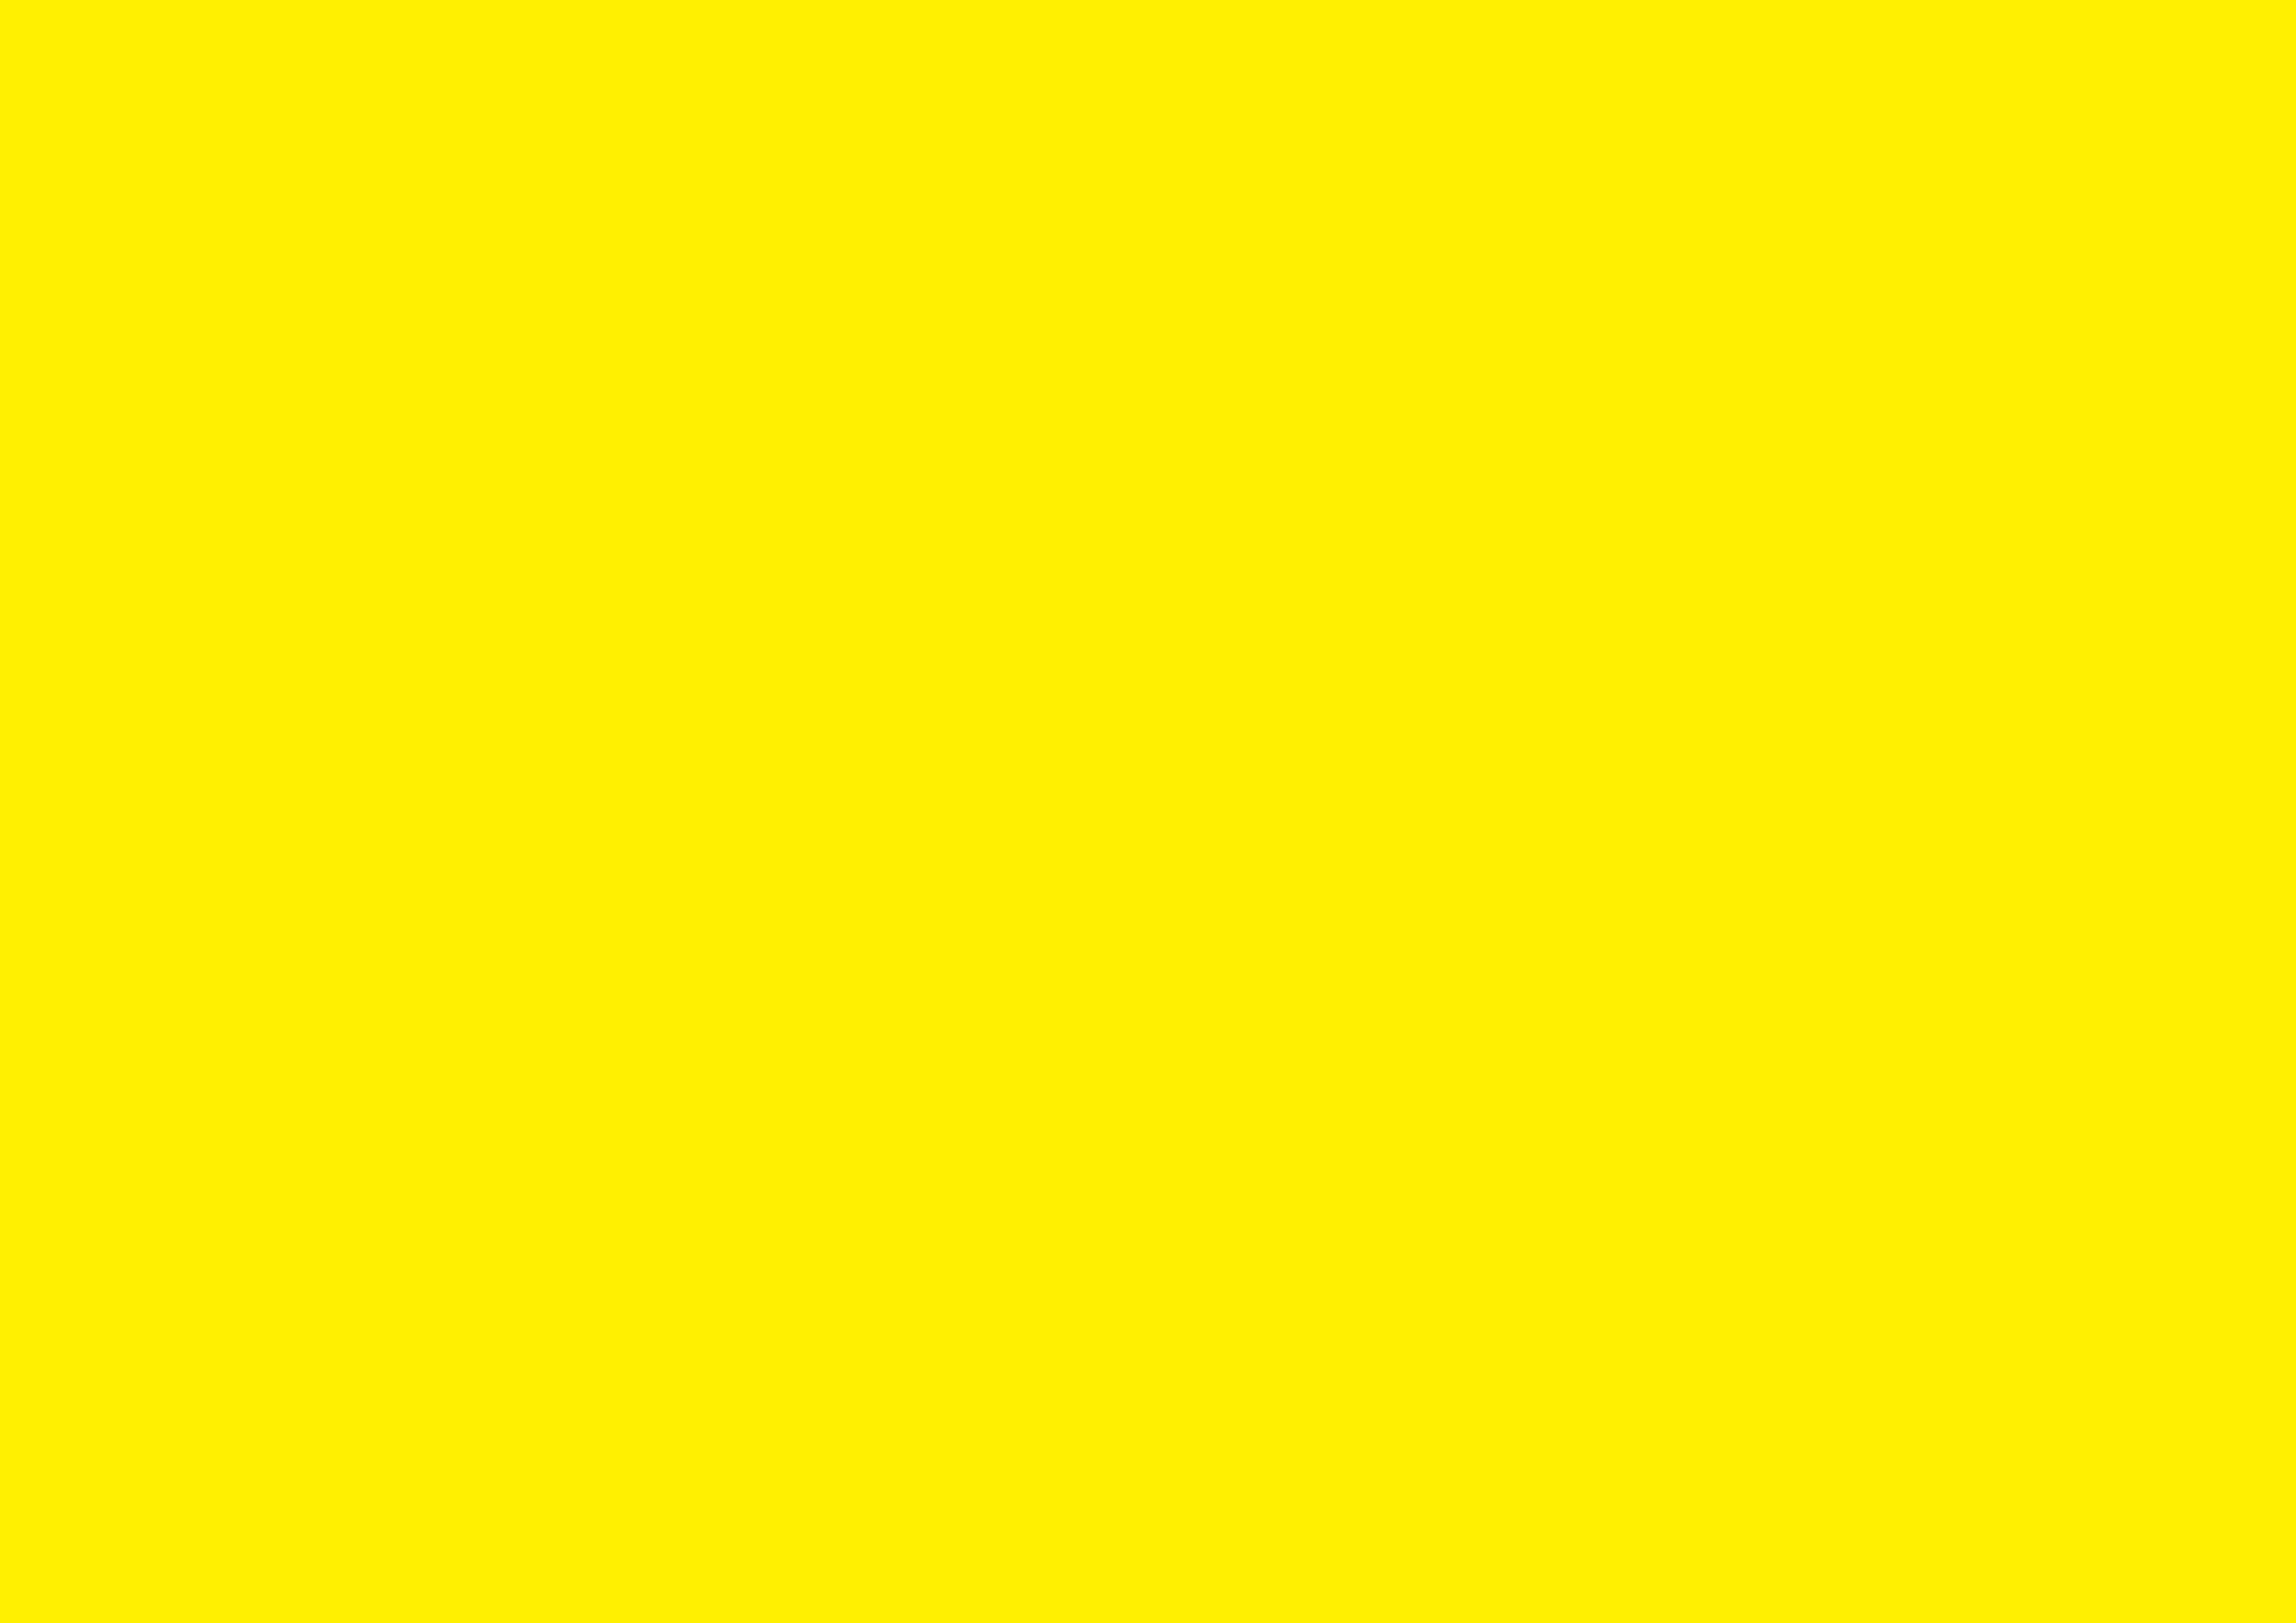 3508x2480 Canary Yellow Solid Color Background